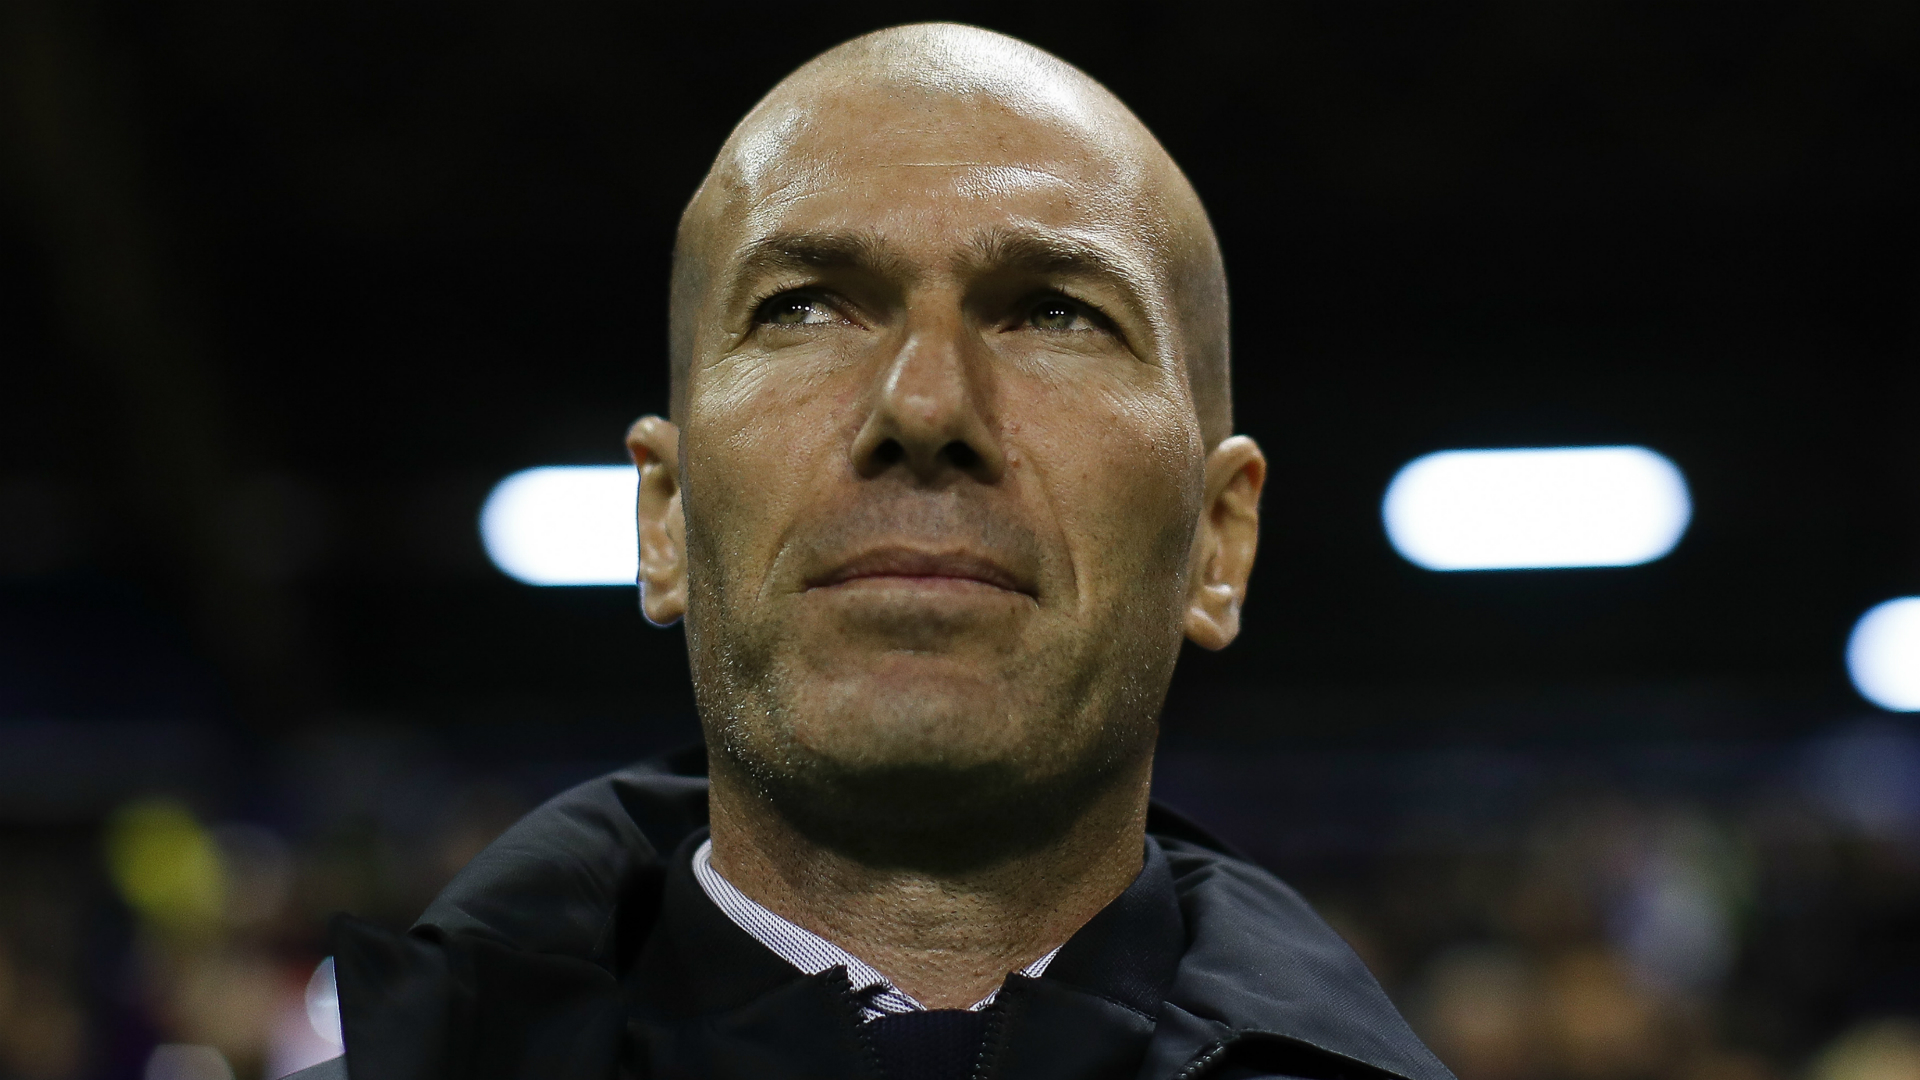 Zinedine Zidane reflected on Real Madrid's collapse at home to Manchester City on Wednesday.